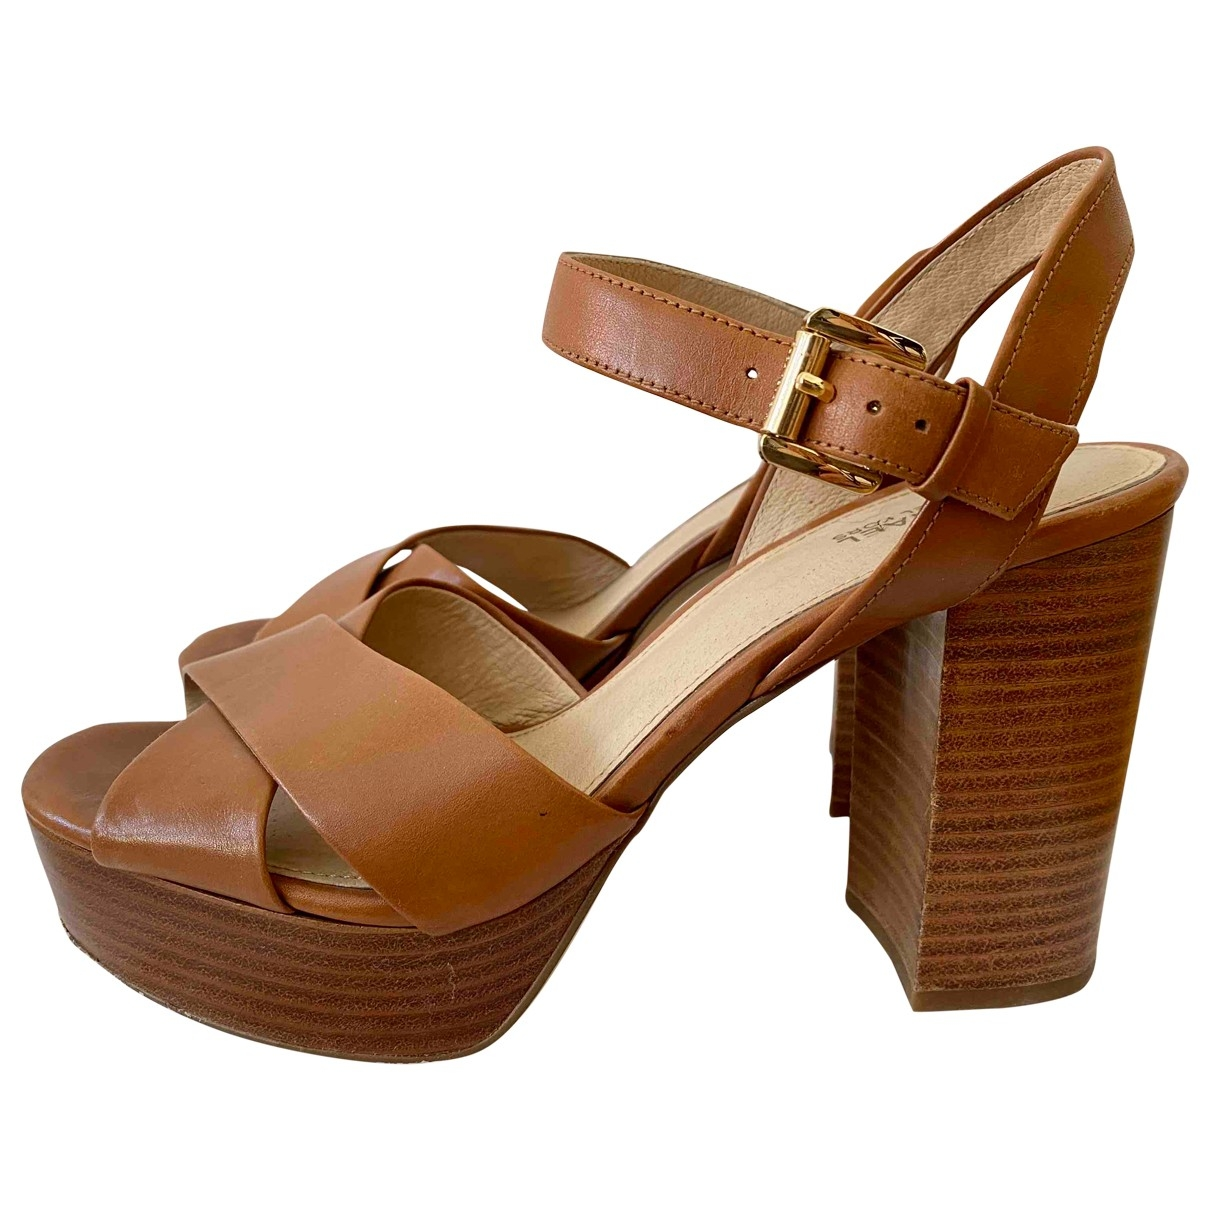 Michael Kors \N Brown Leather Sandals for Women 7 US